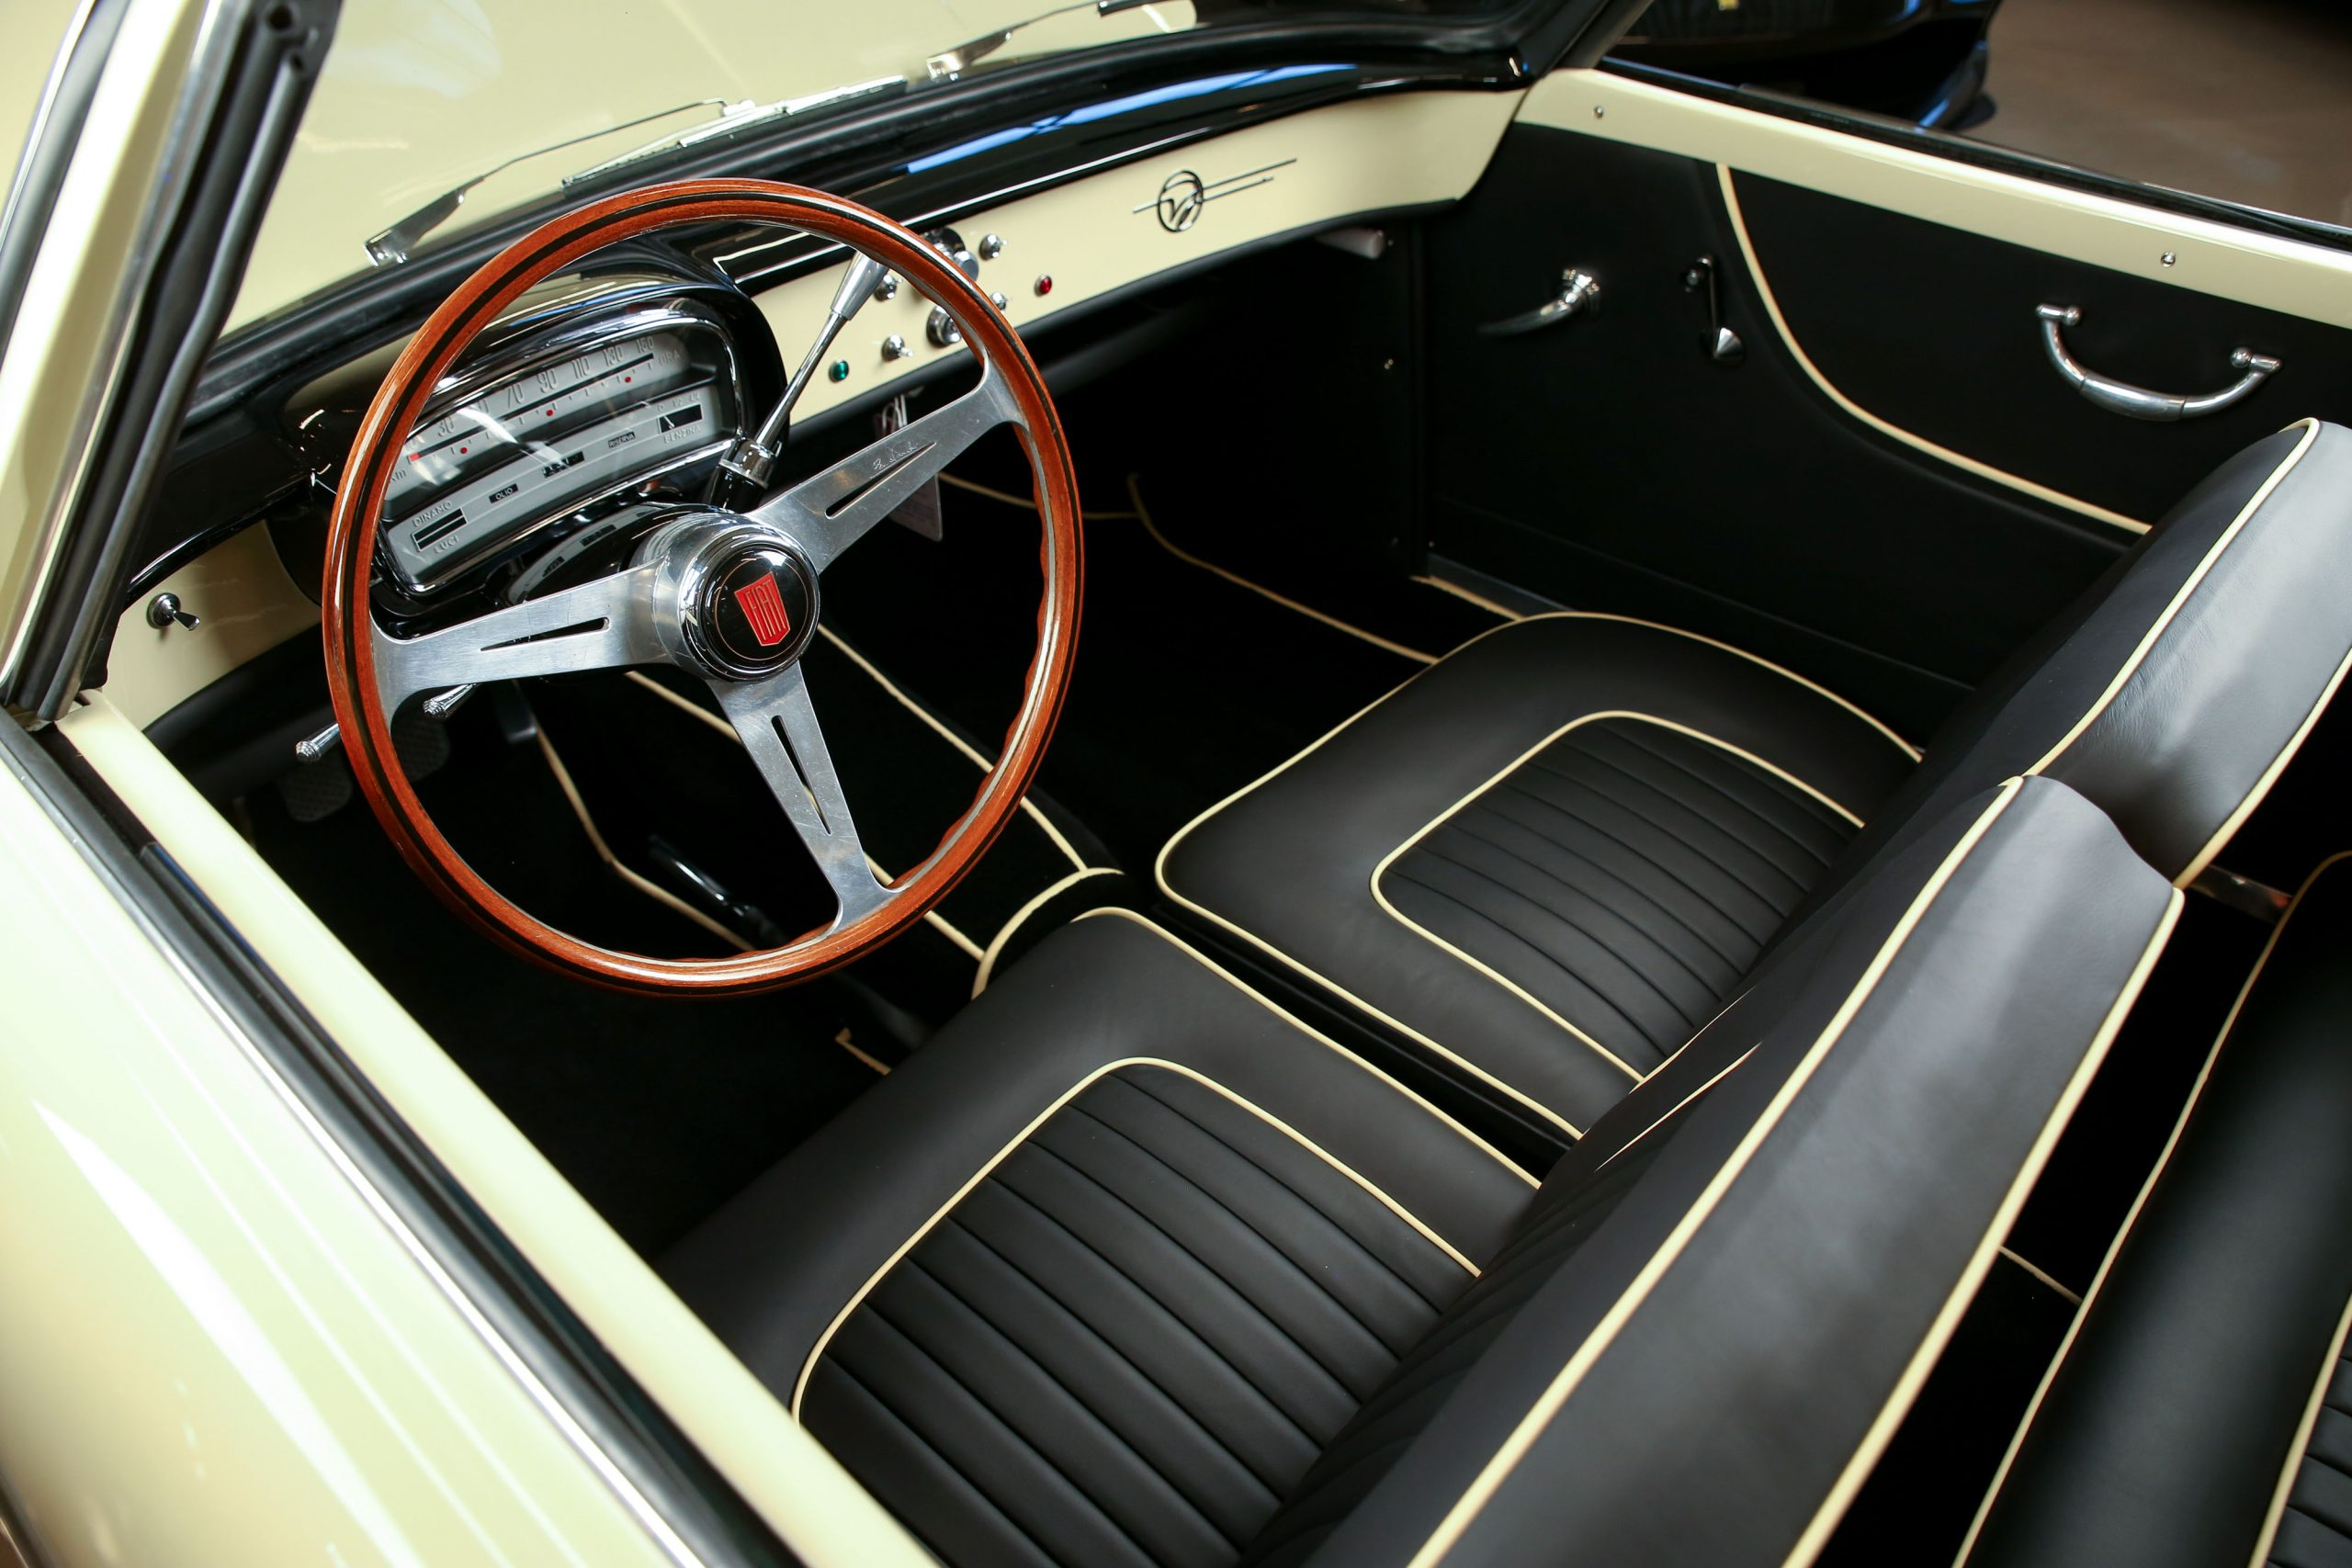 1958 Fiat 1200 Wonderful Coupe by Vignale interior